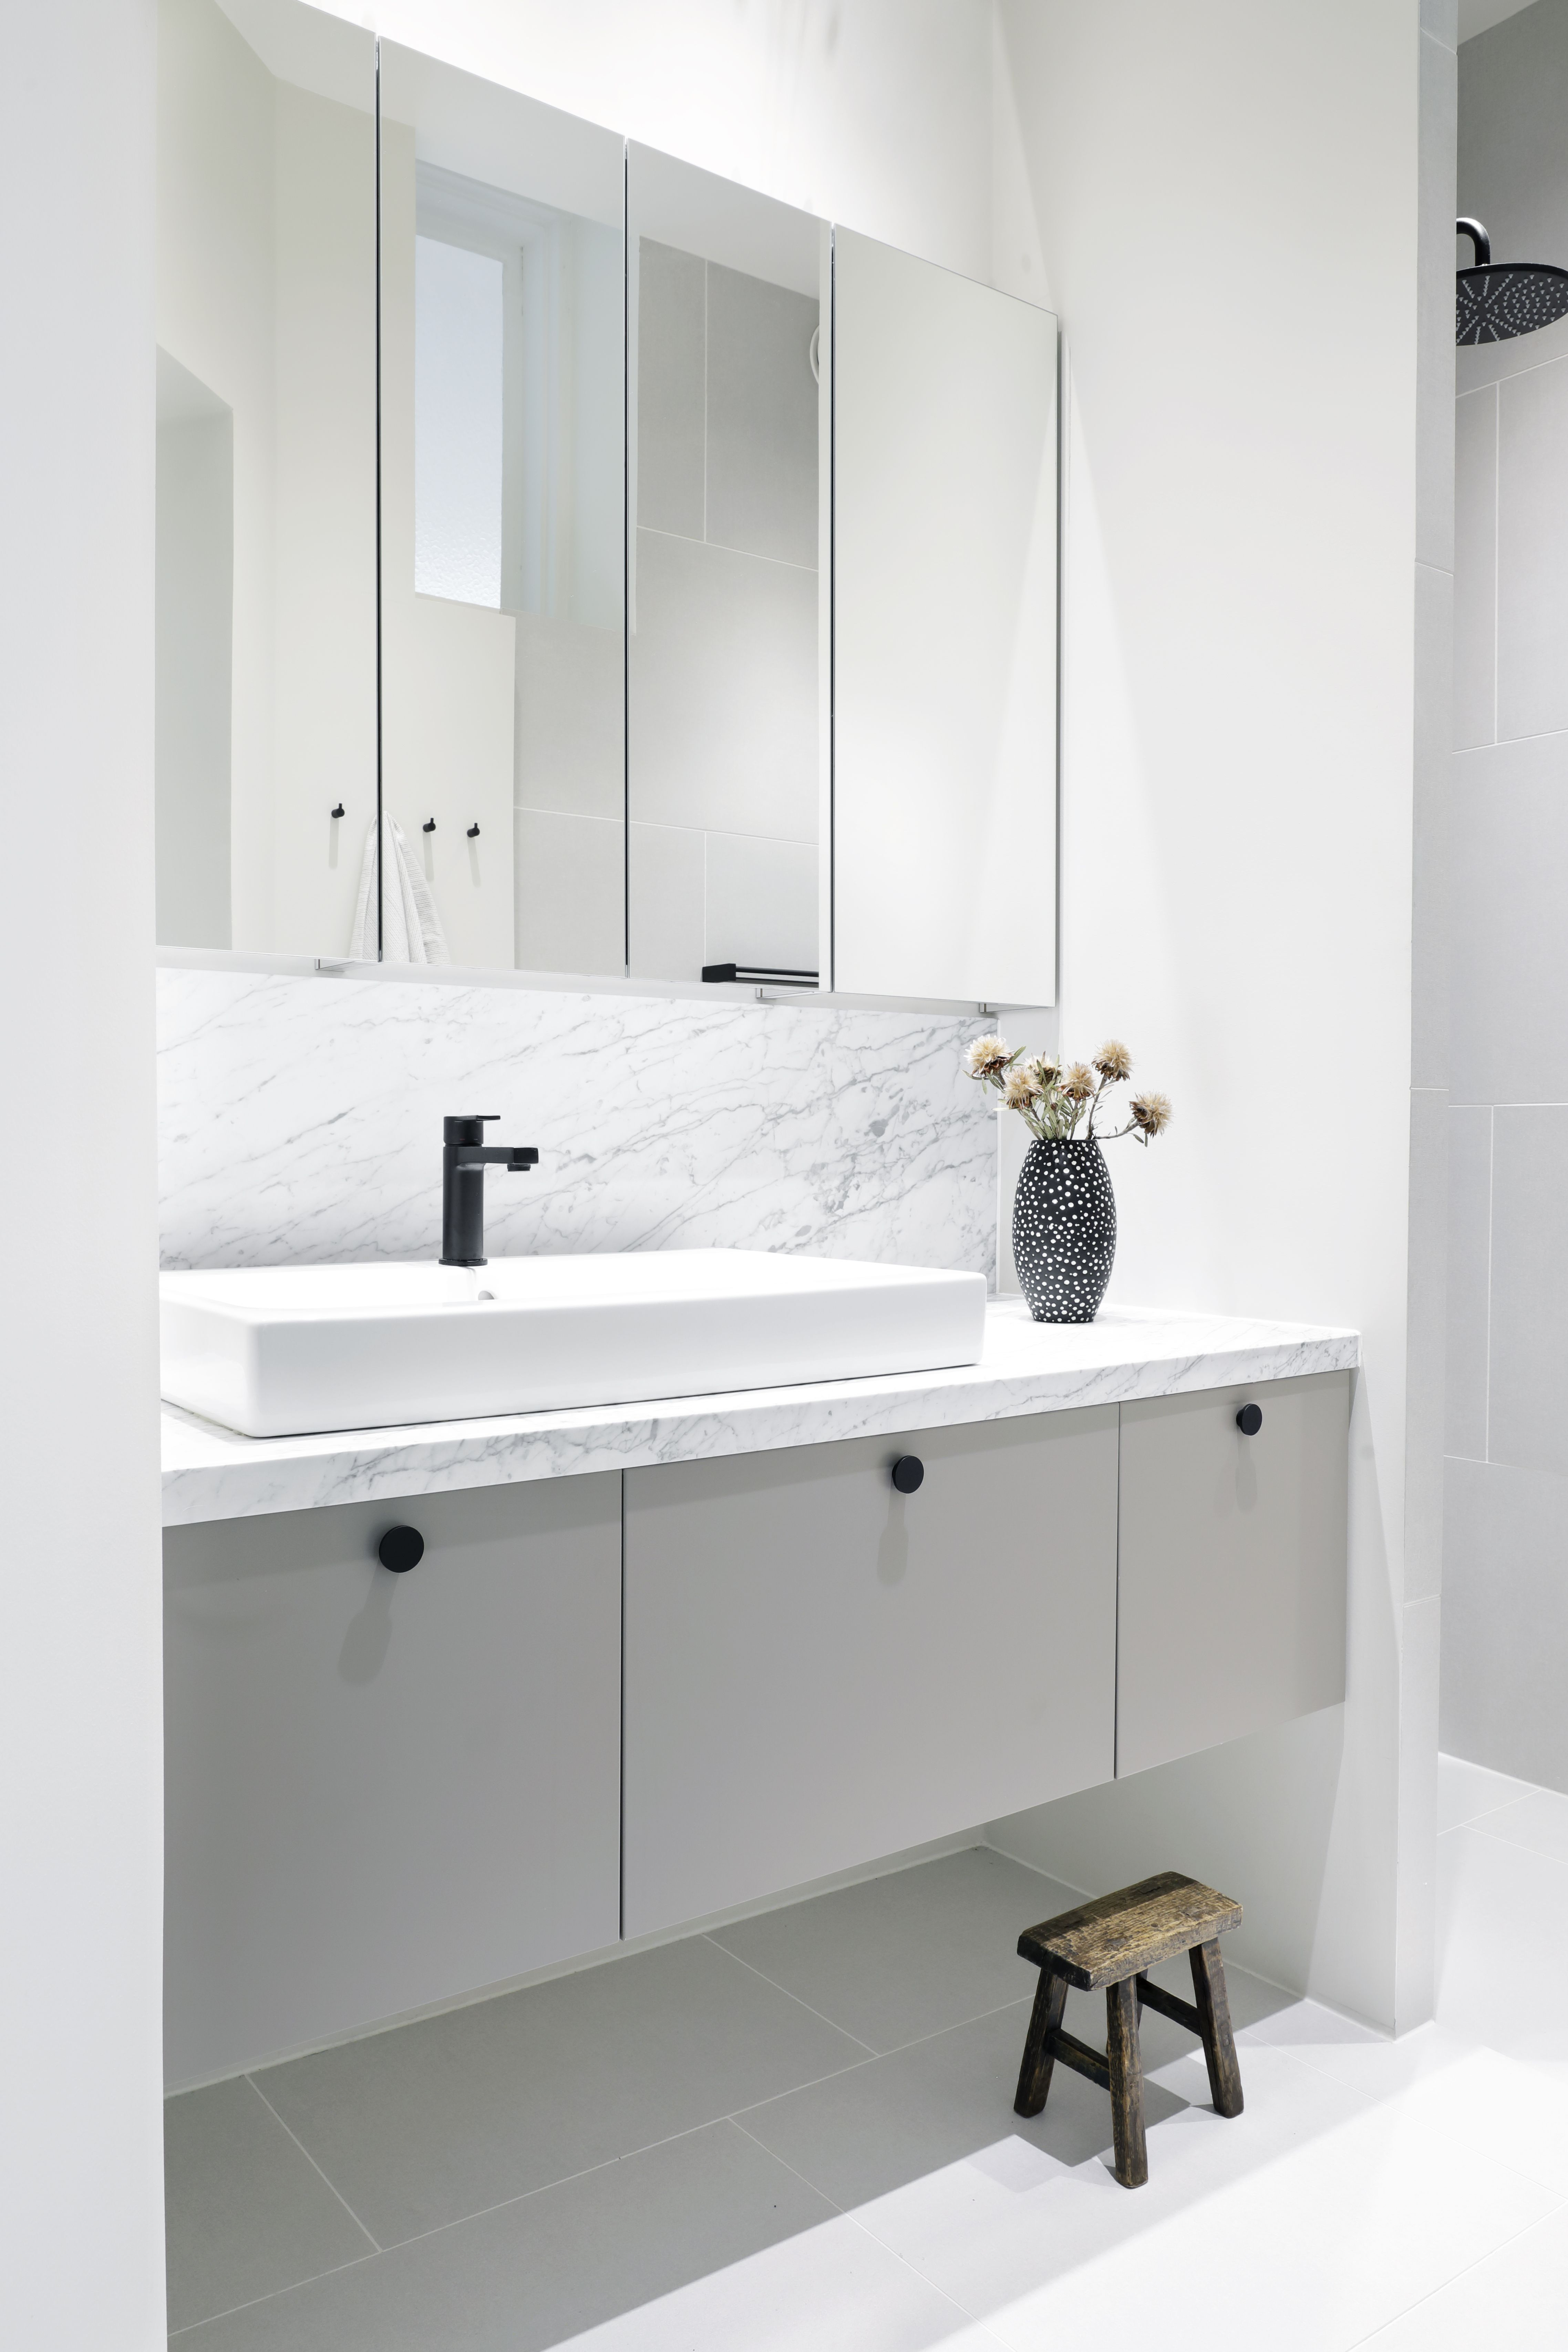 Amazing Family Bathroom With Room For The Whole Family To Brush Their Teeth And Get Ready For The Waschtisch Ikea Ikea Badezimmer Ikea Waschbeckenunterschrank